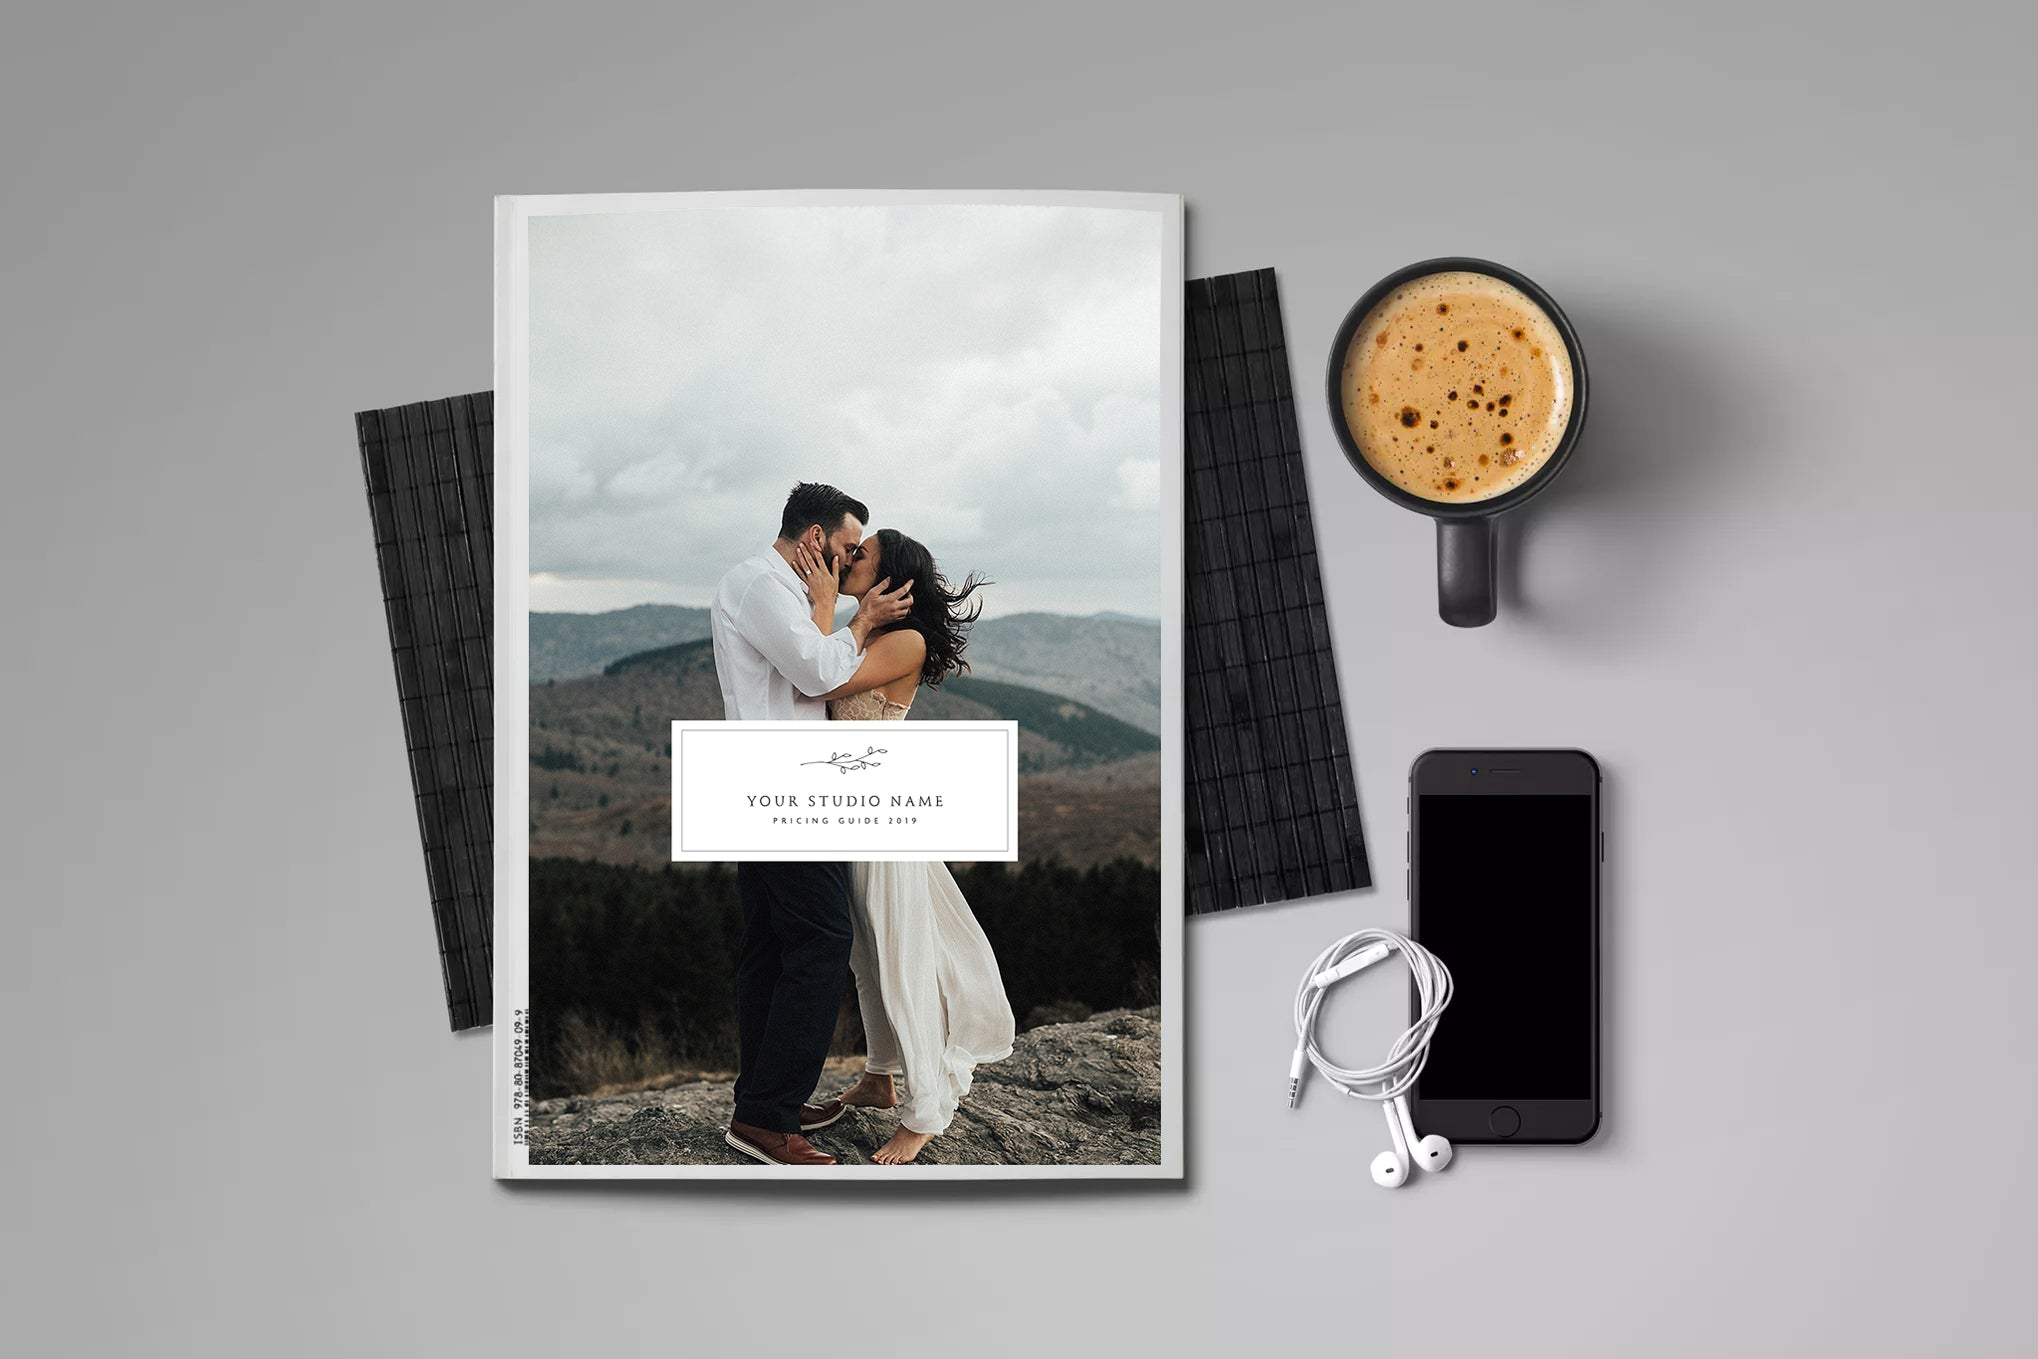 Photoshop Photography or Creative Pricing Guide Template - LIZ